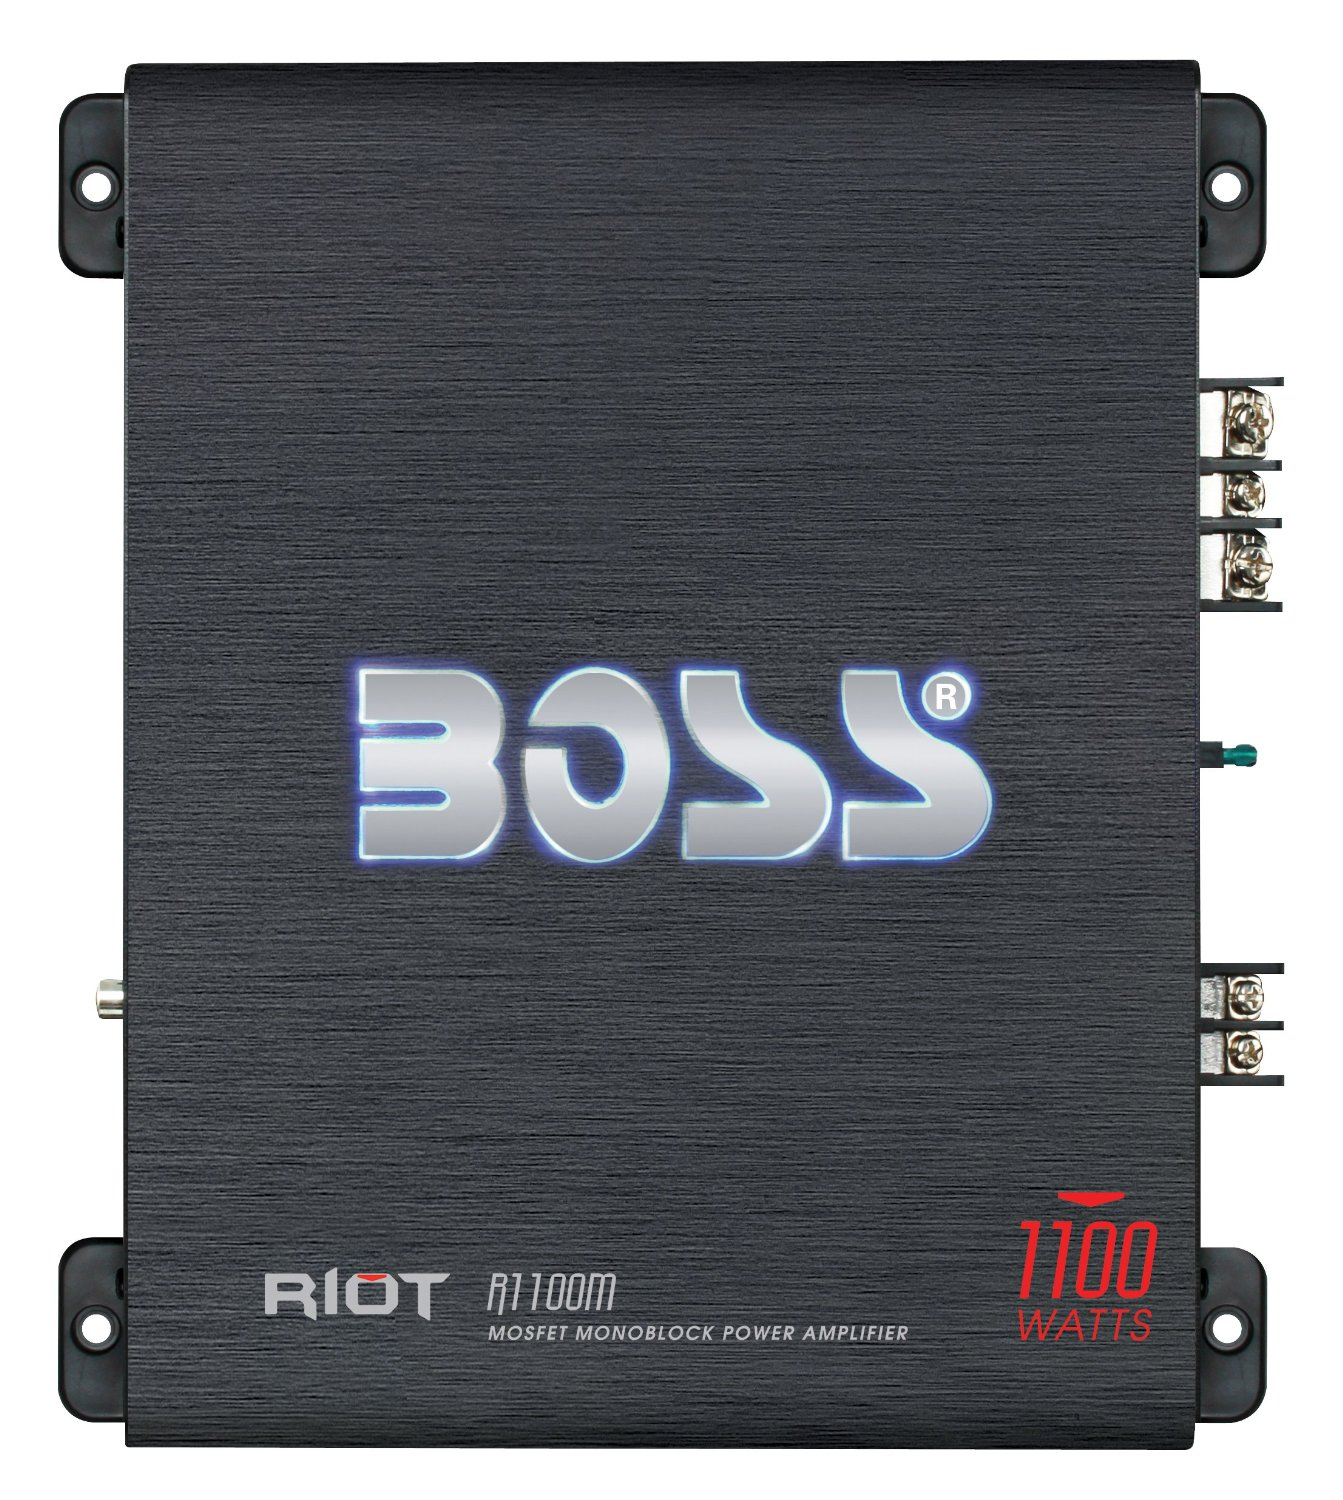 Amazon.com : BOSS Audio R1100M Riot 1100-watts Monoblock Class A/B 1 Channel 2-8 Ohm Stable Amplifier with Remote Subwoofer Level Control : Vehicle Mono Subwoofer Amplifiers